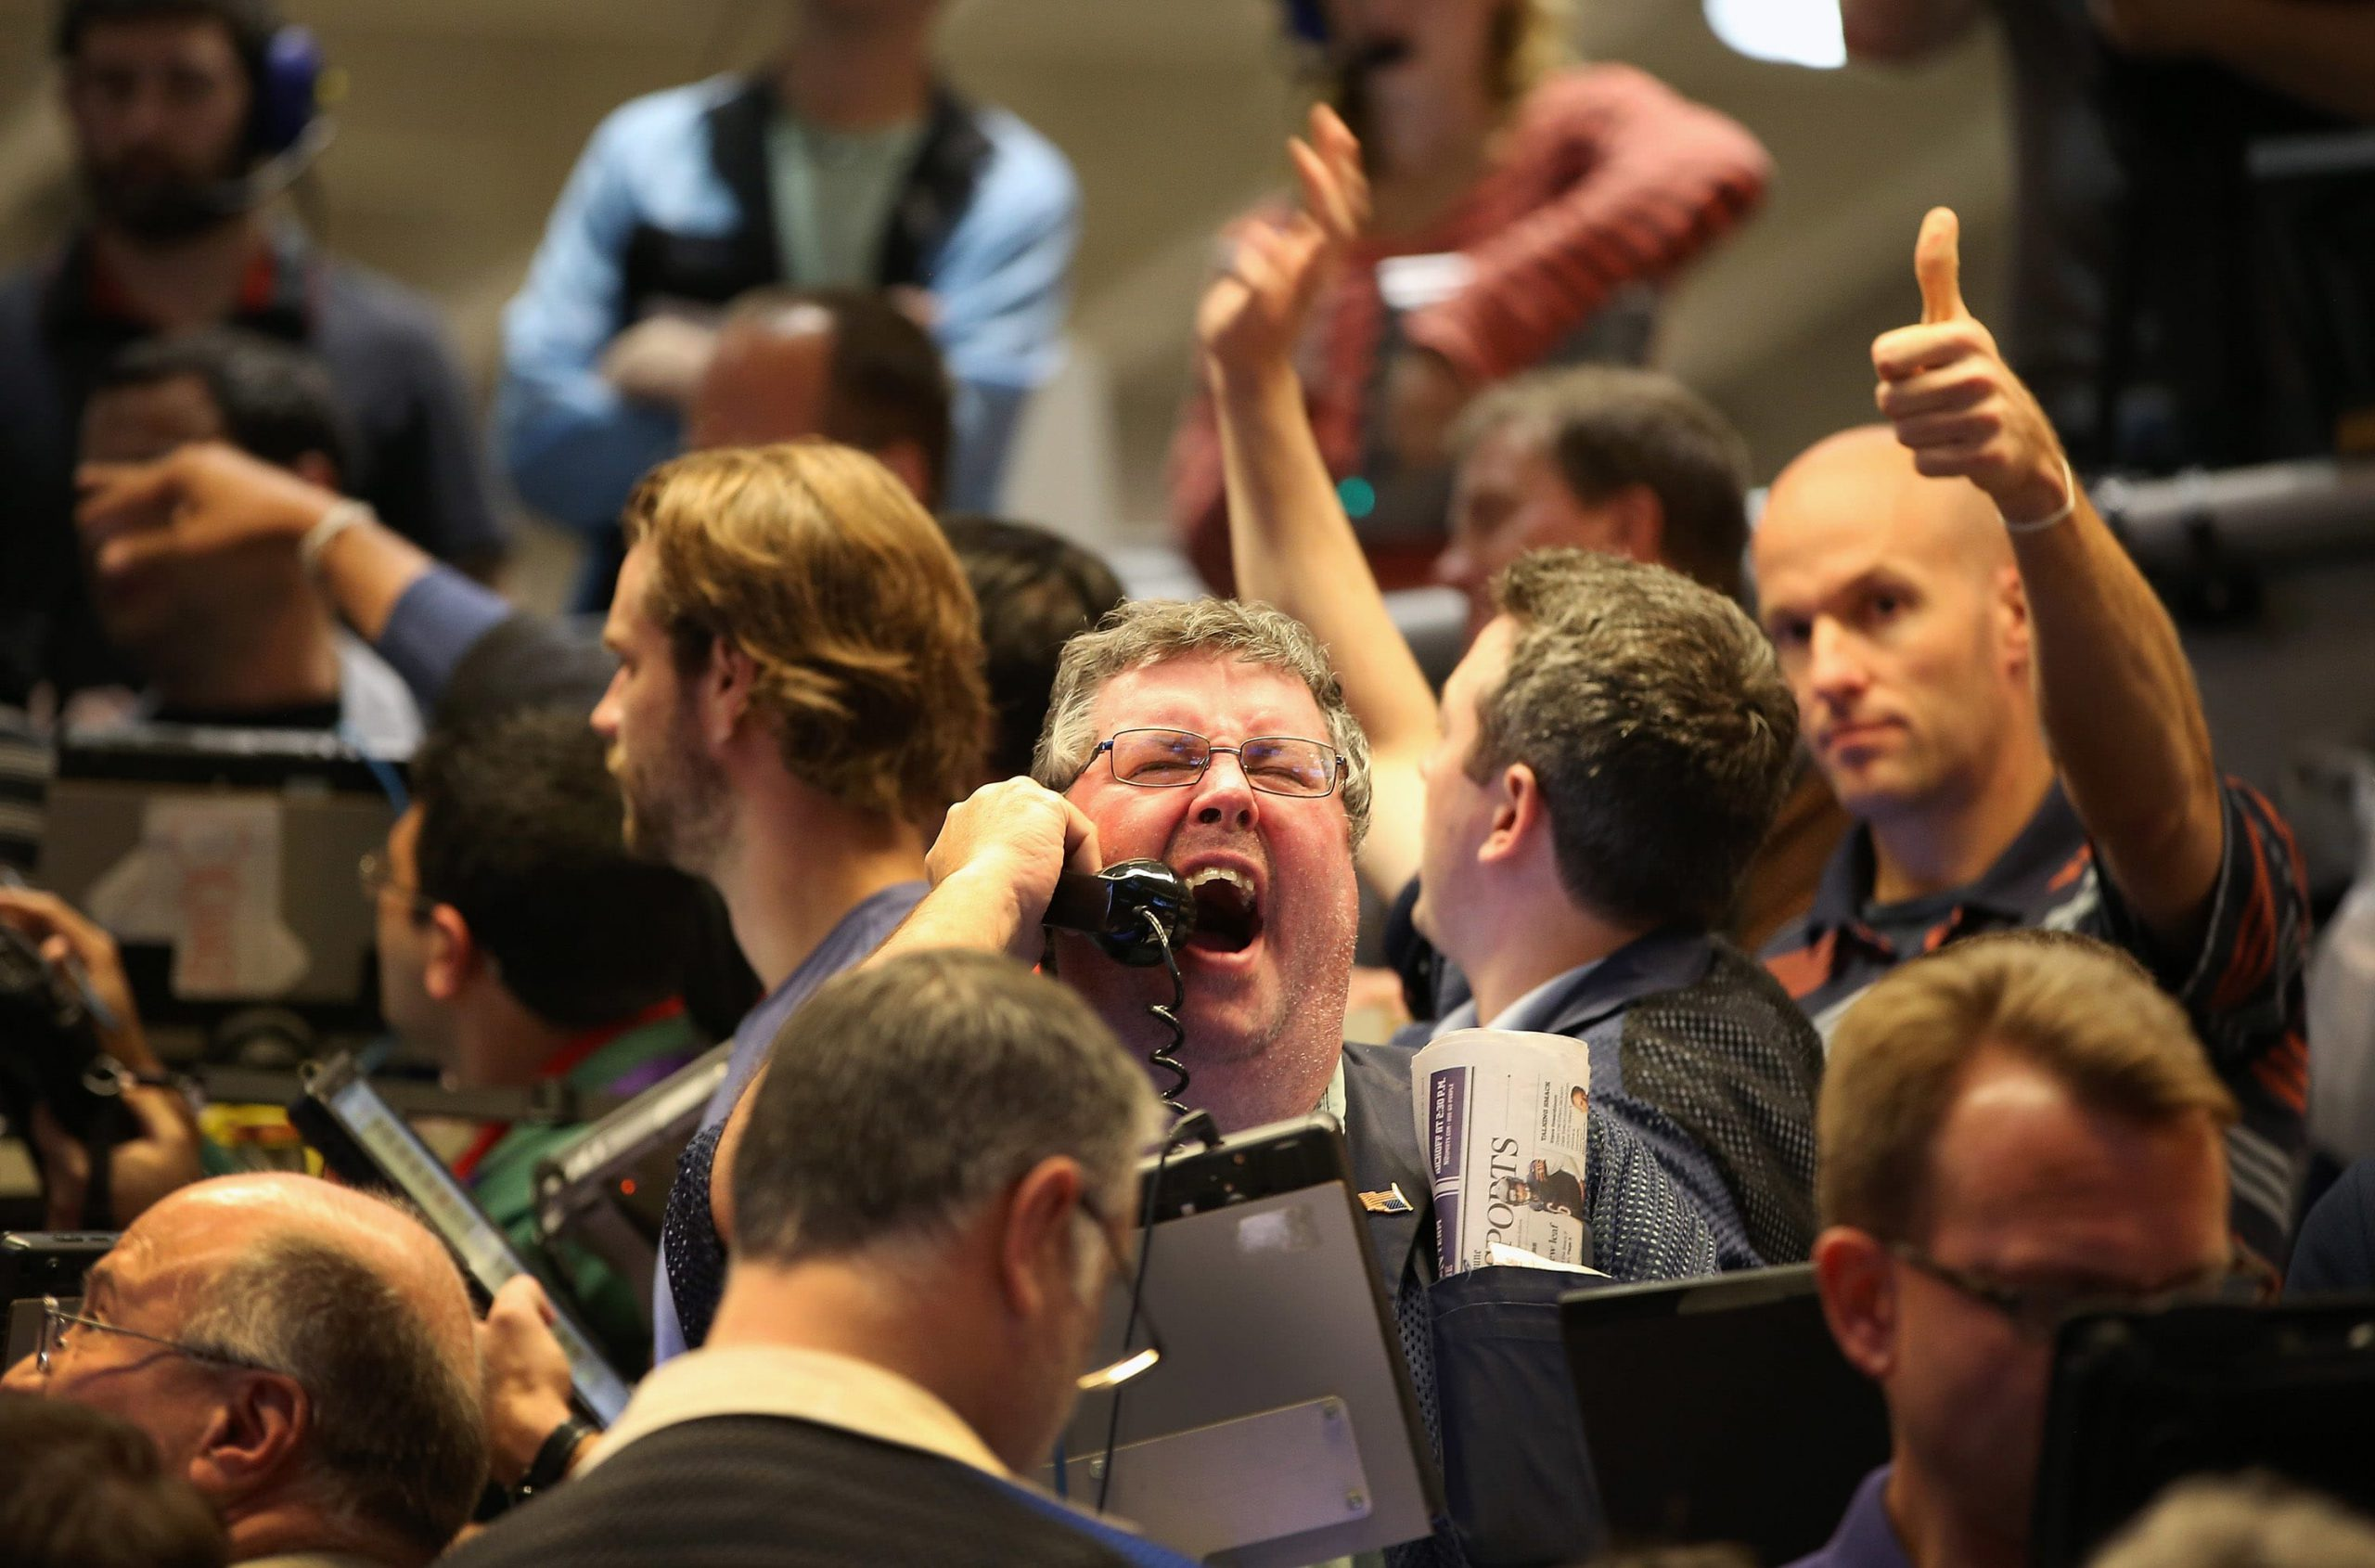 Stocks stumble into February, one of the weakest months for stocks